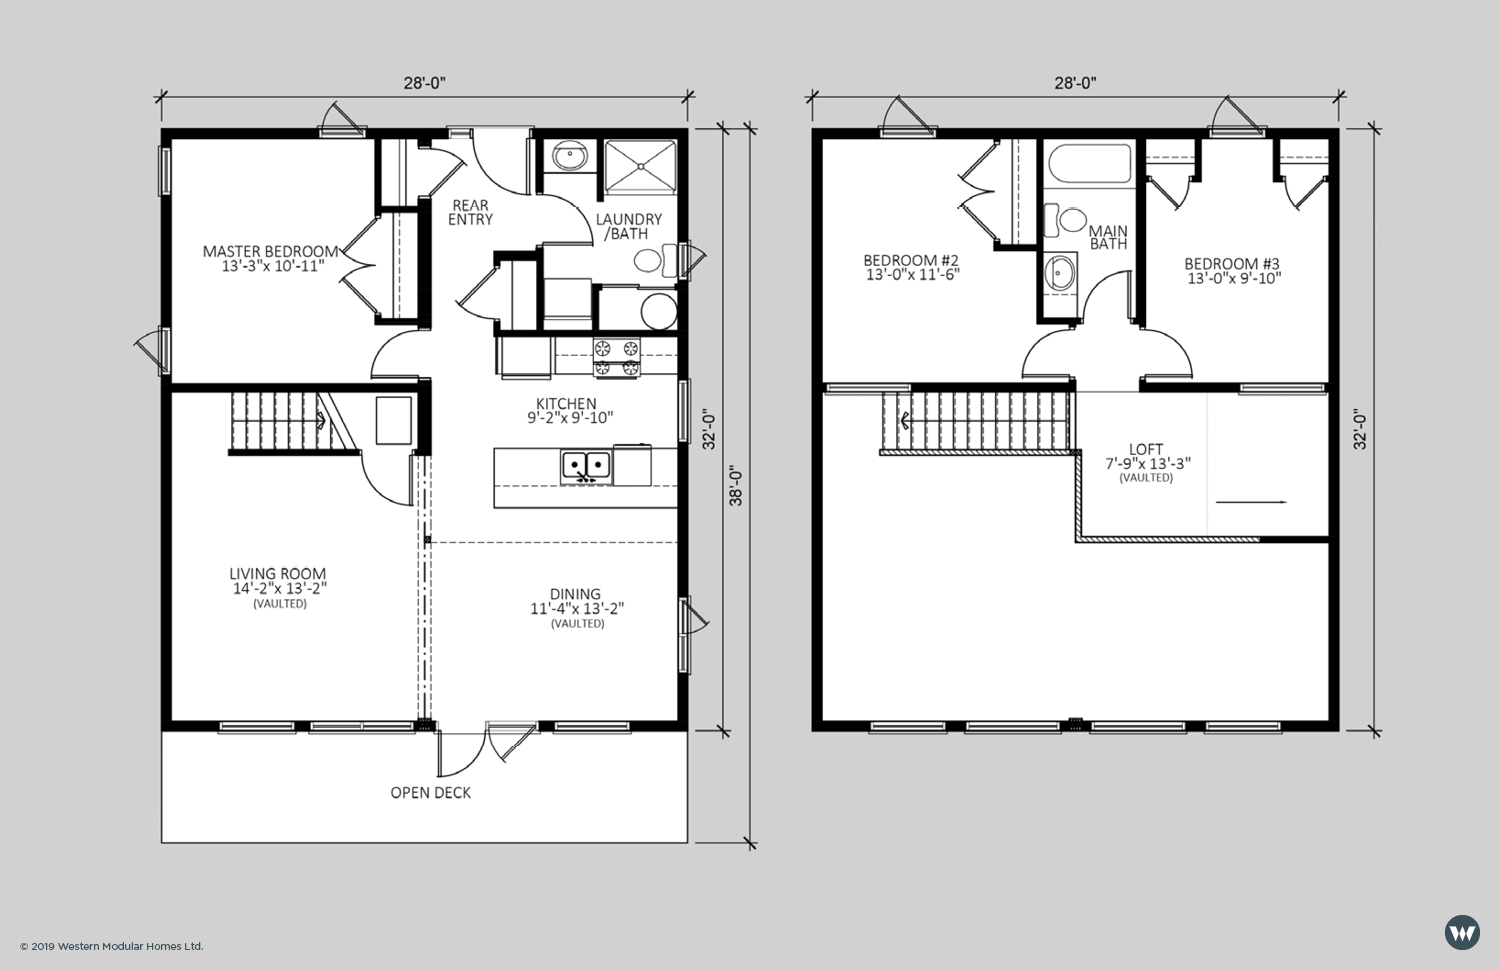 The Oasis  1,360 sq ft  Showhome Floorplan